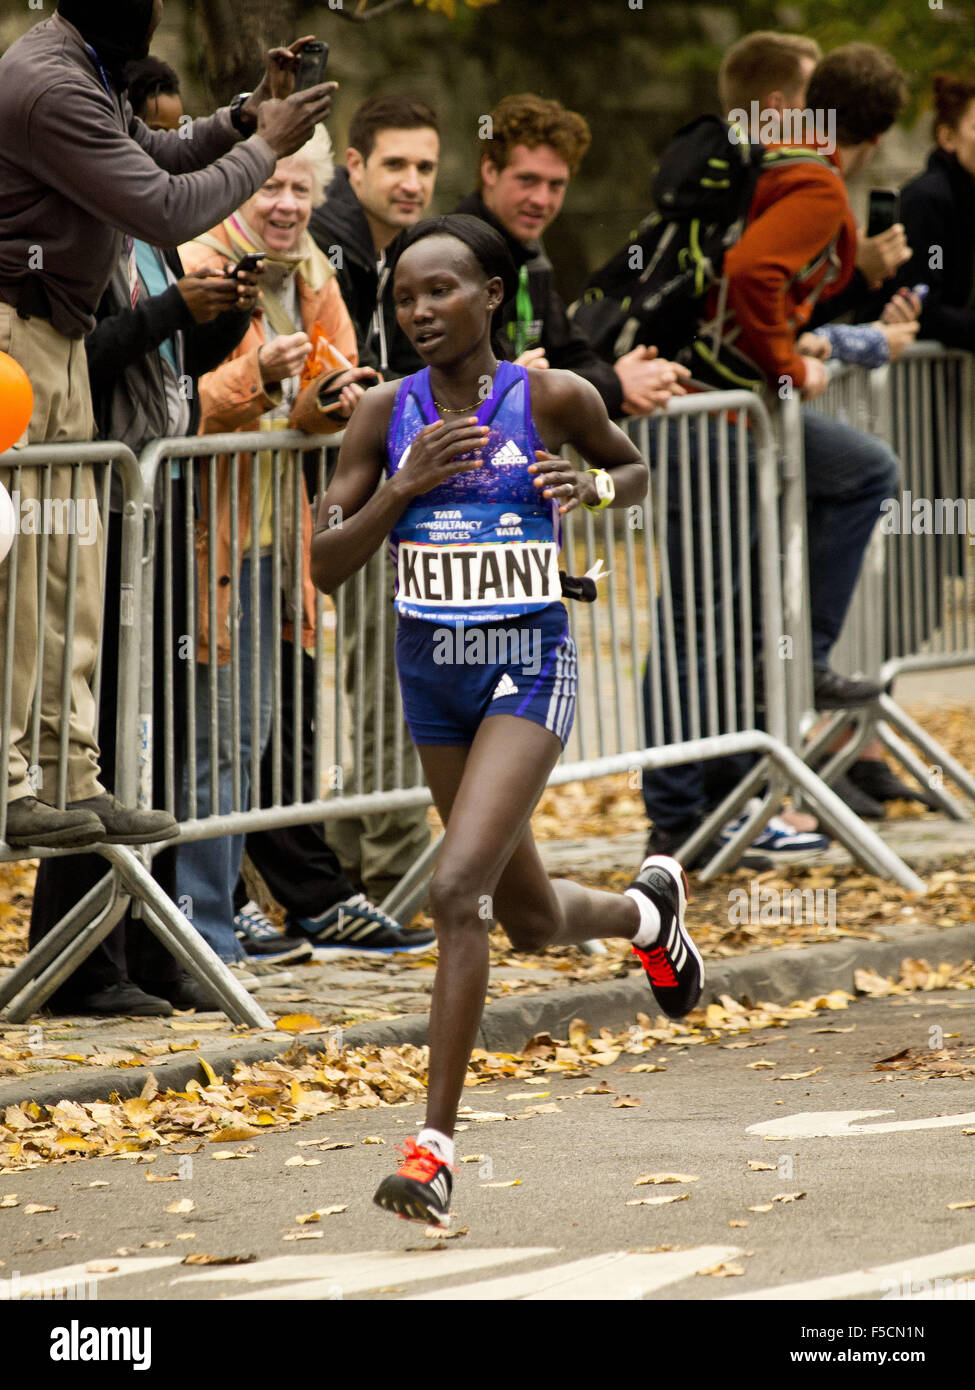 New York, New York, USA. 1. November 2015. New York City-Marathon. NYC Marathon, Central Park, New York, NY USA, Stockbild